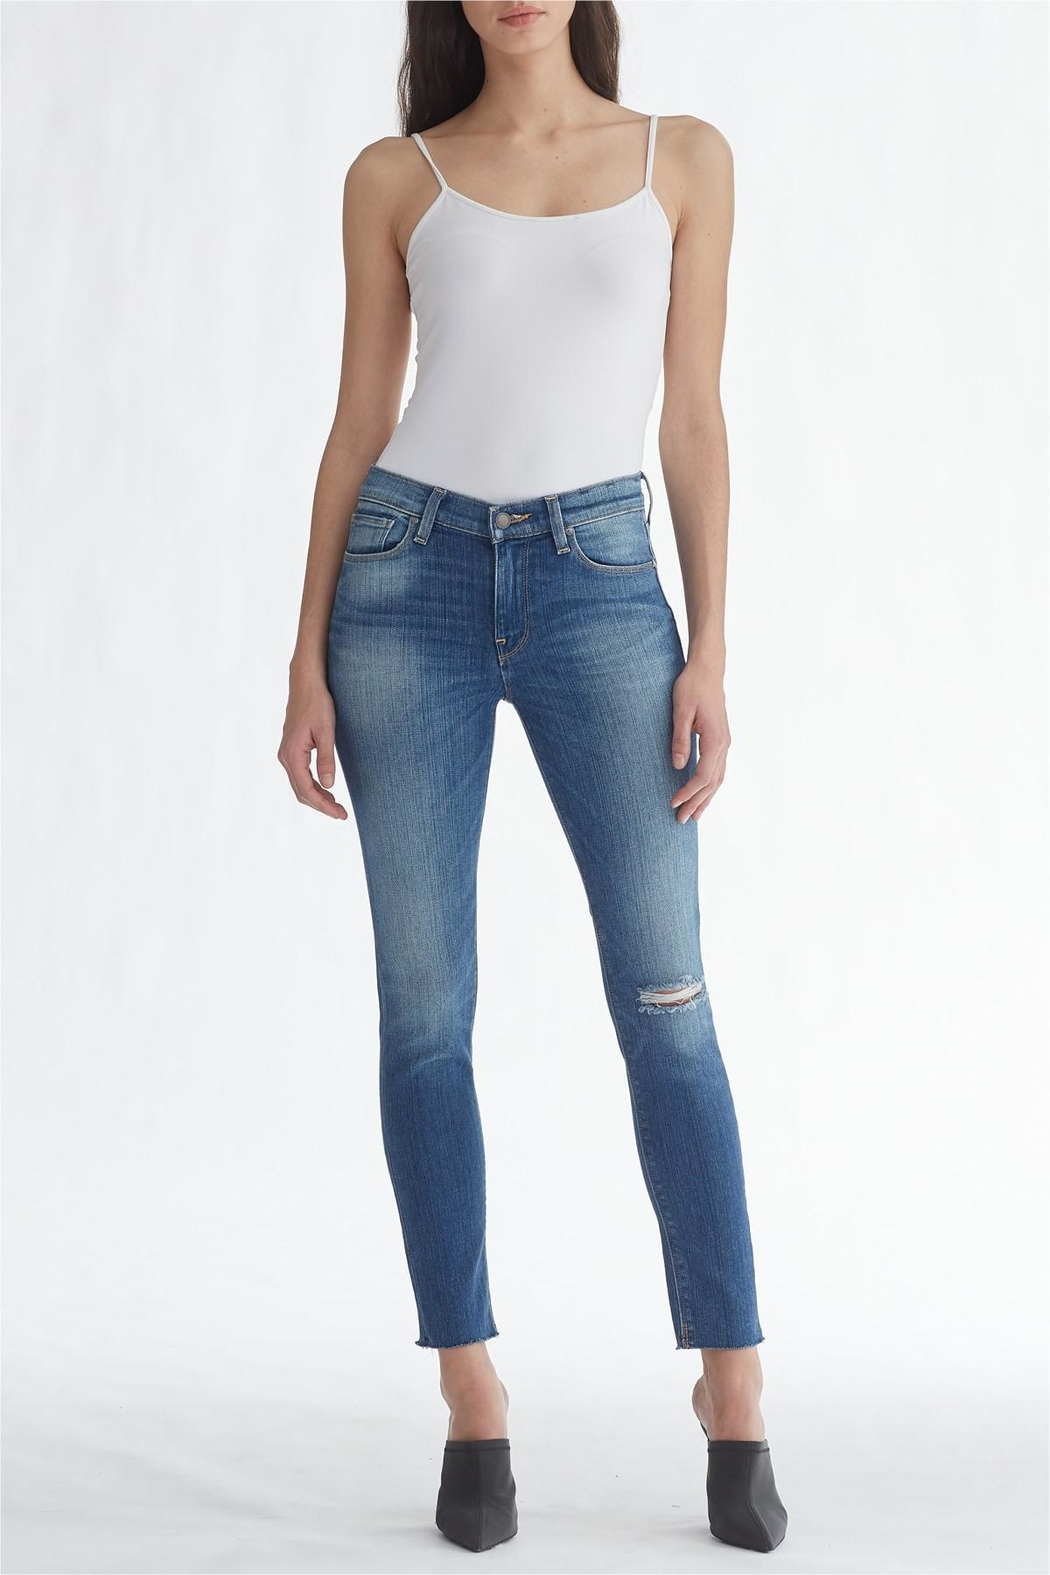 Hudson Jeans Light-Wash Ripped-Knee Ankle-Skinny - Main Image